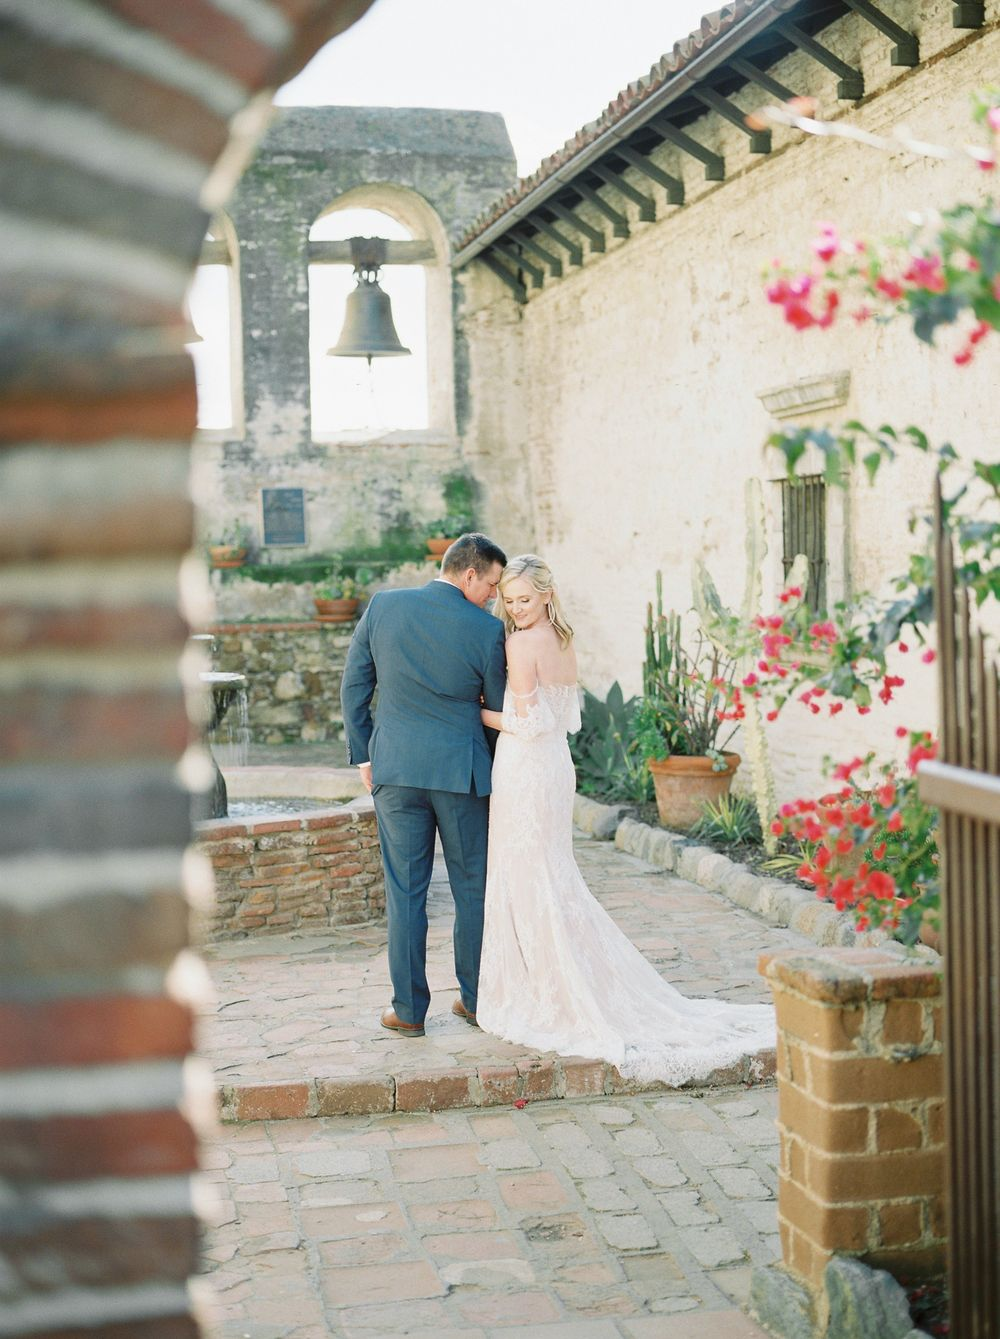 Wedding Portrait -Melissa Mae Photography - San Juan Mission, Capistrano, California